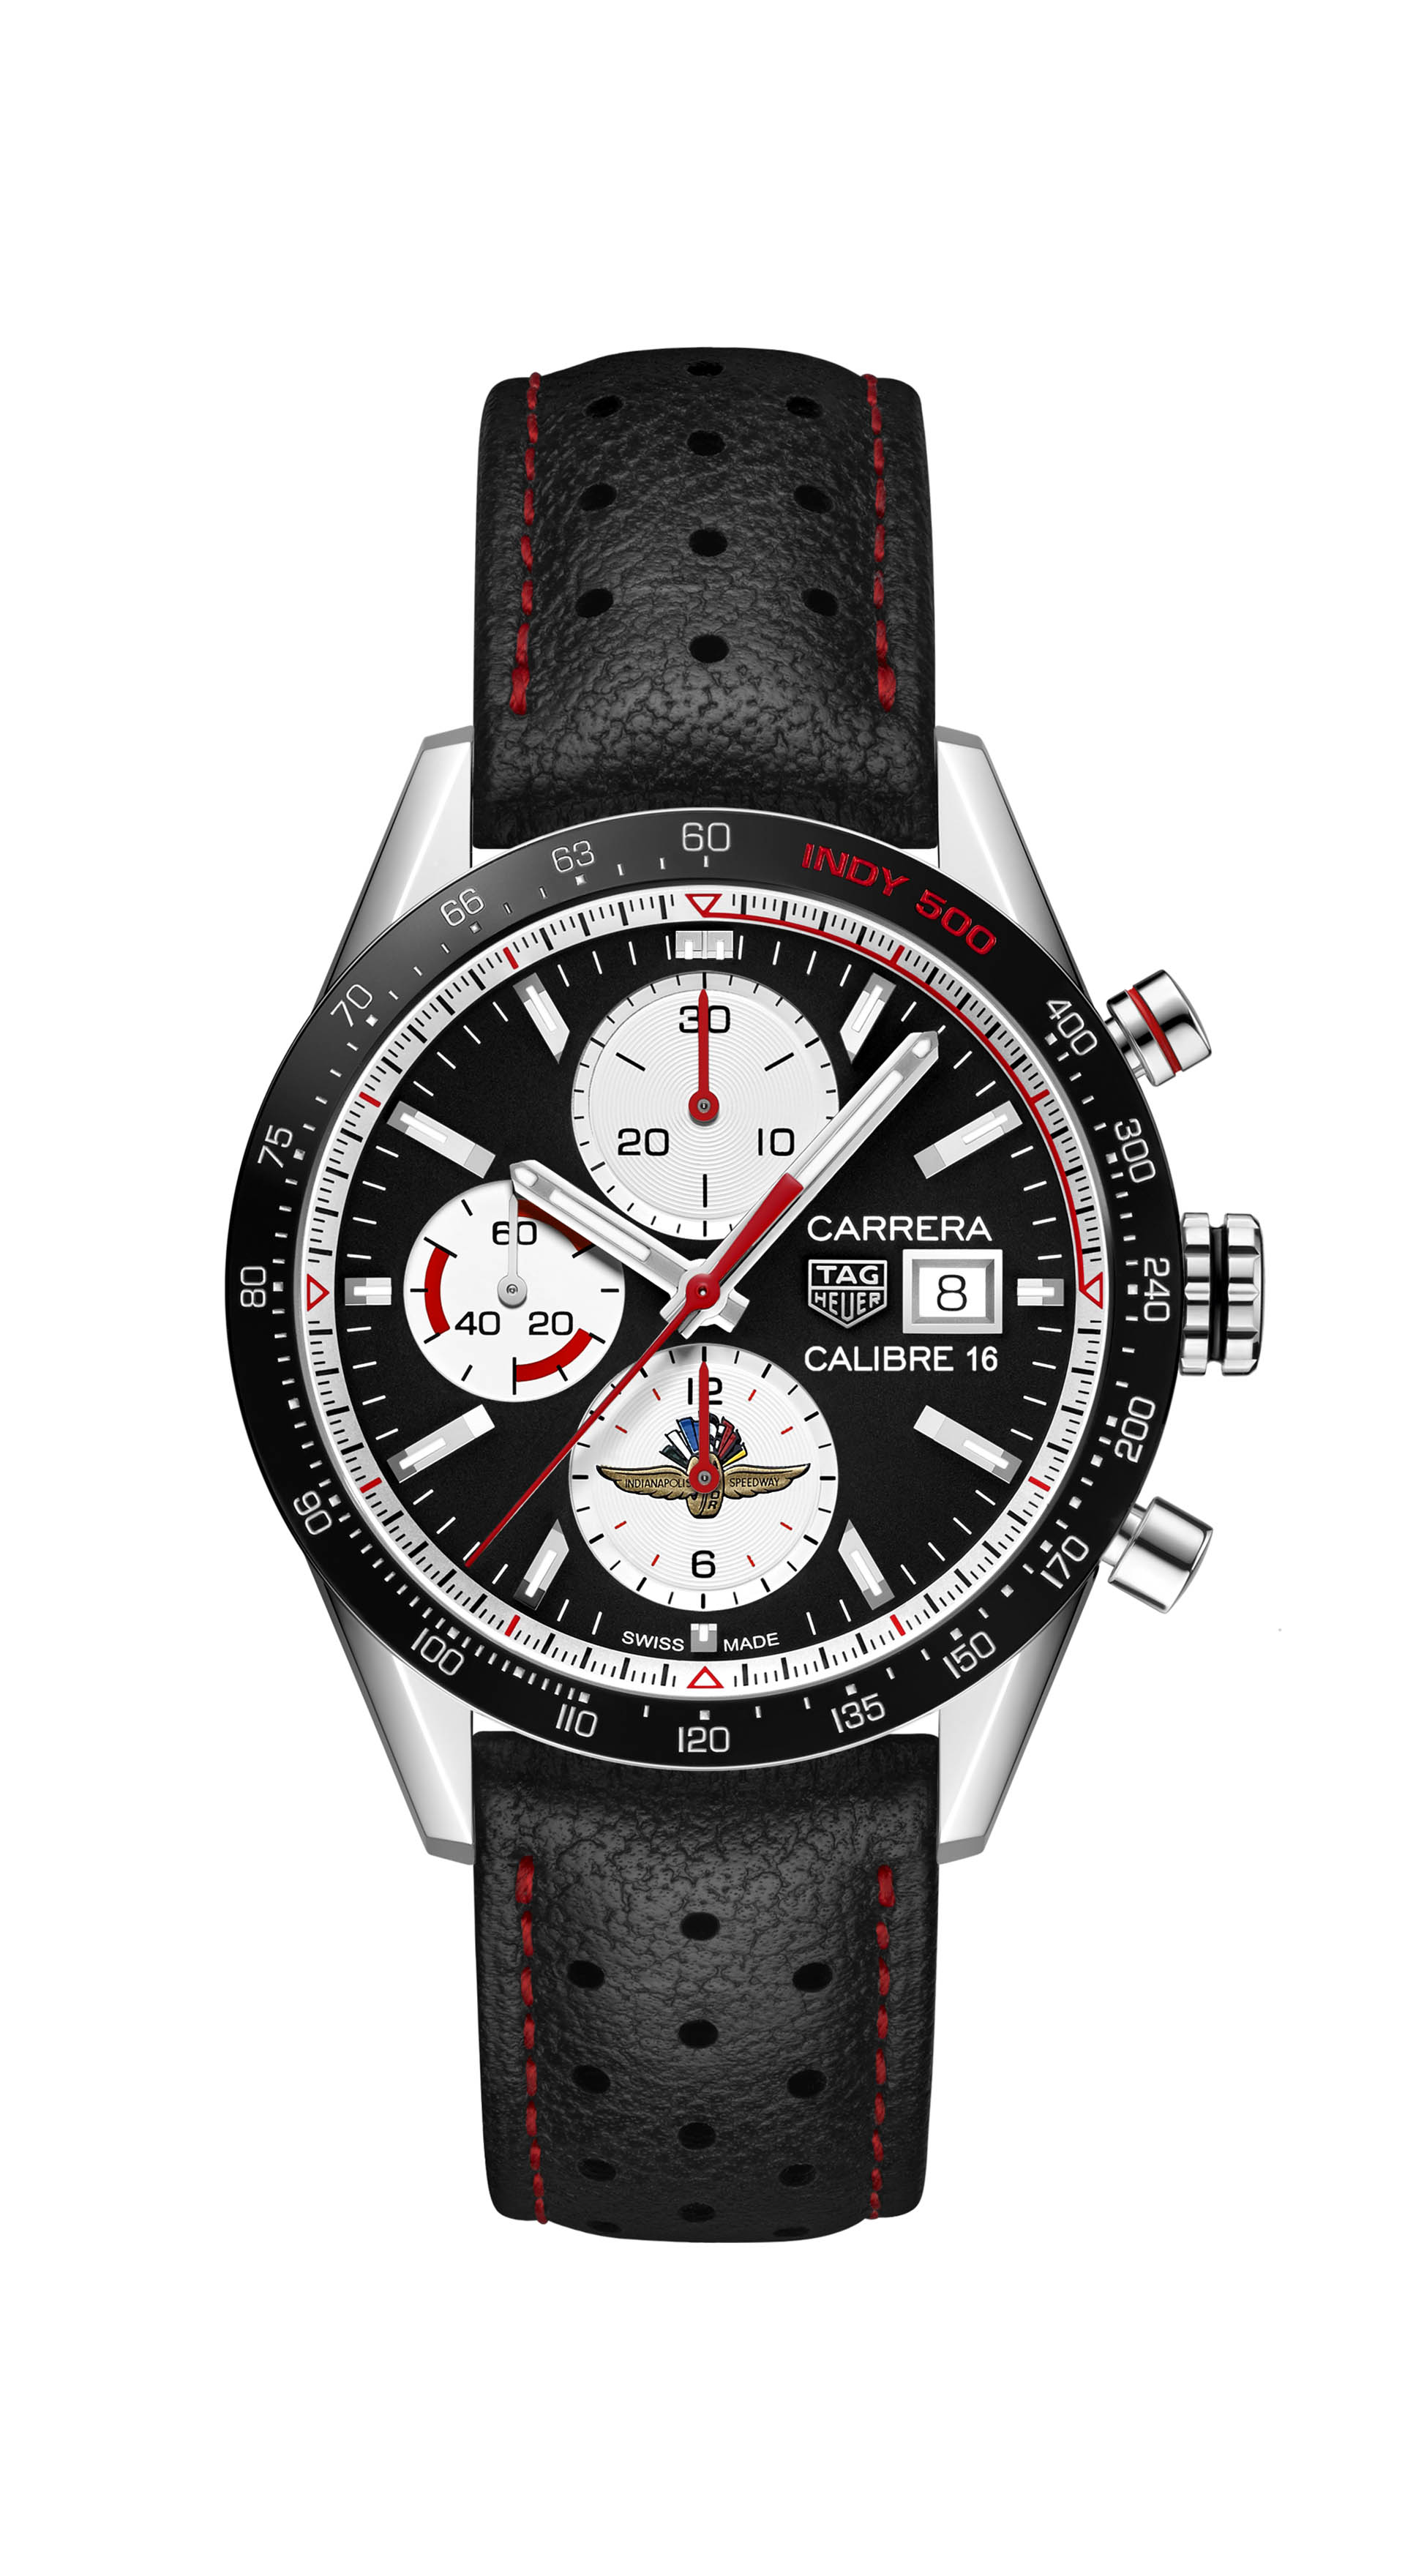 TAG Heuer Carrera Calibre 16 Special Edition Indy 500 2019